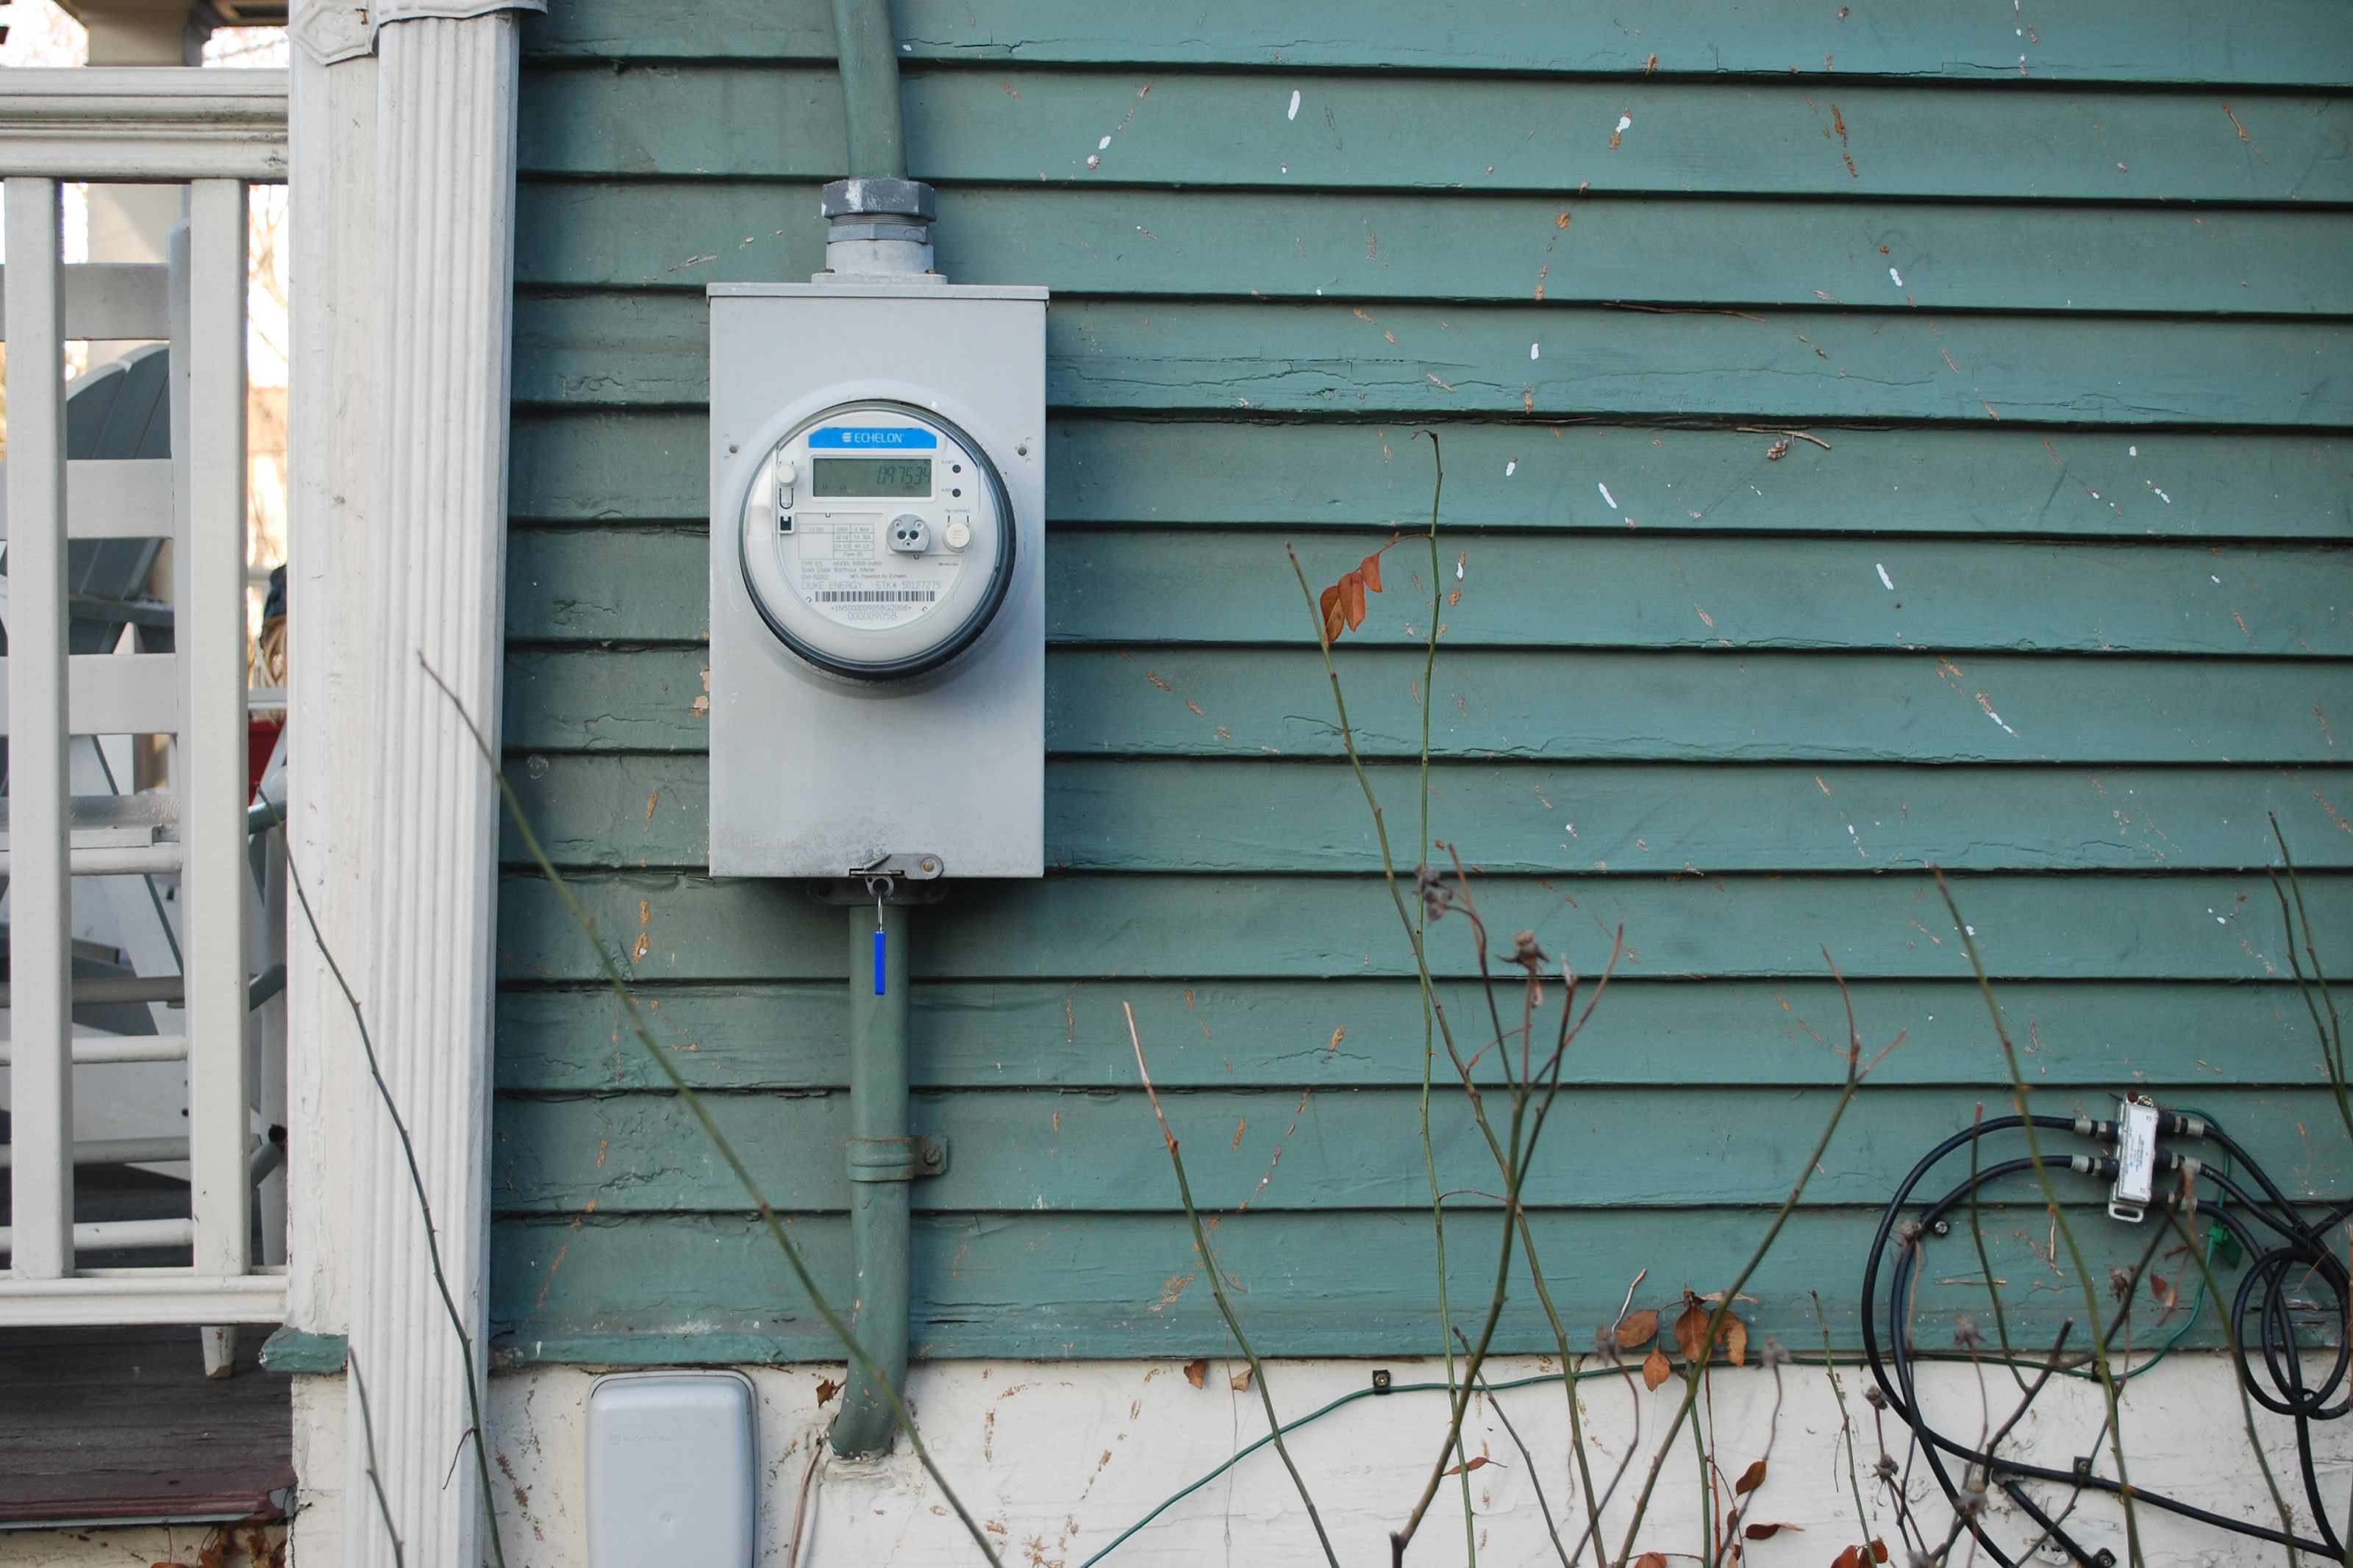 Should I Switch Electric Suppliers? | Compare Electric Rates